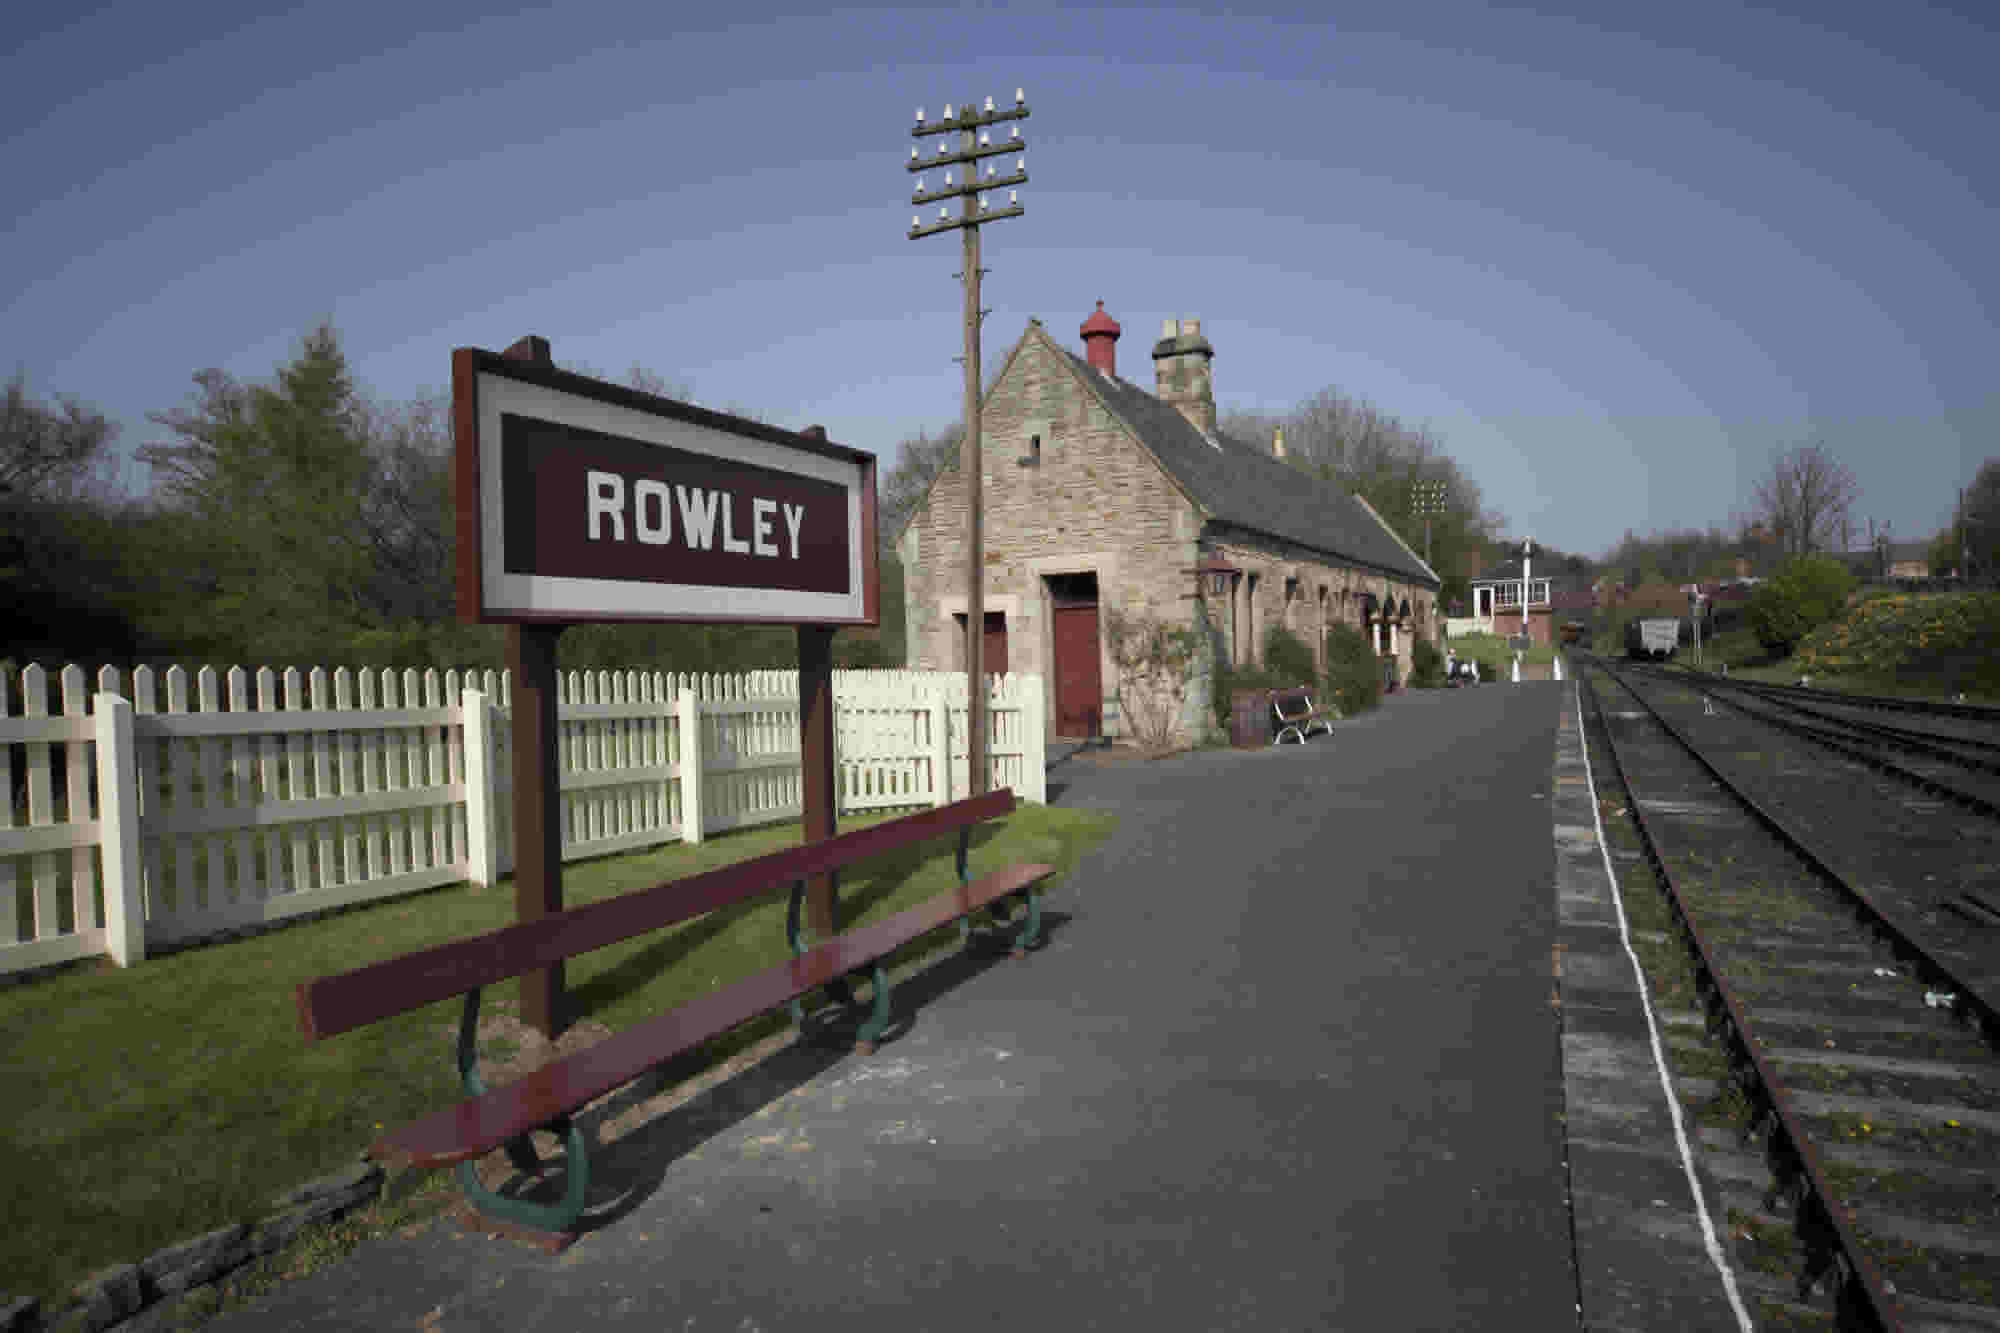 Rowley Station